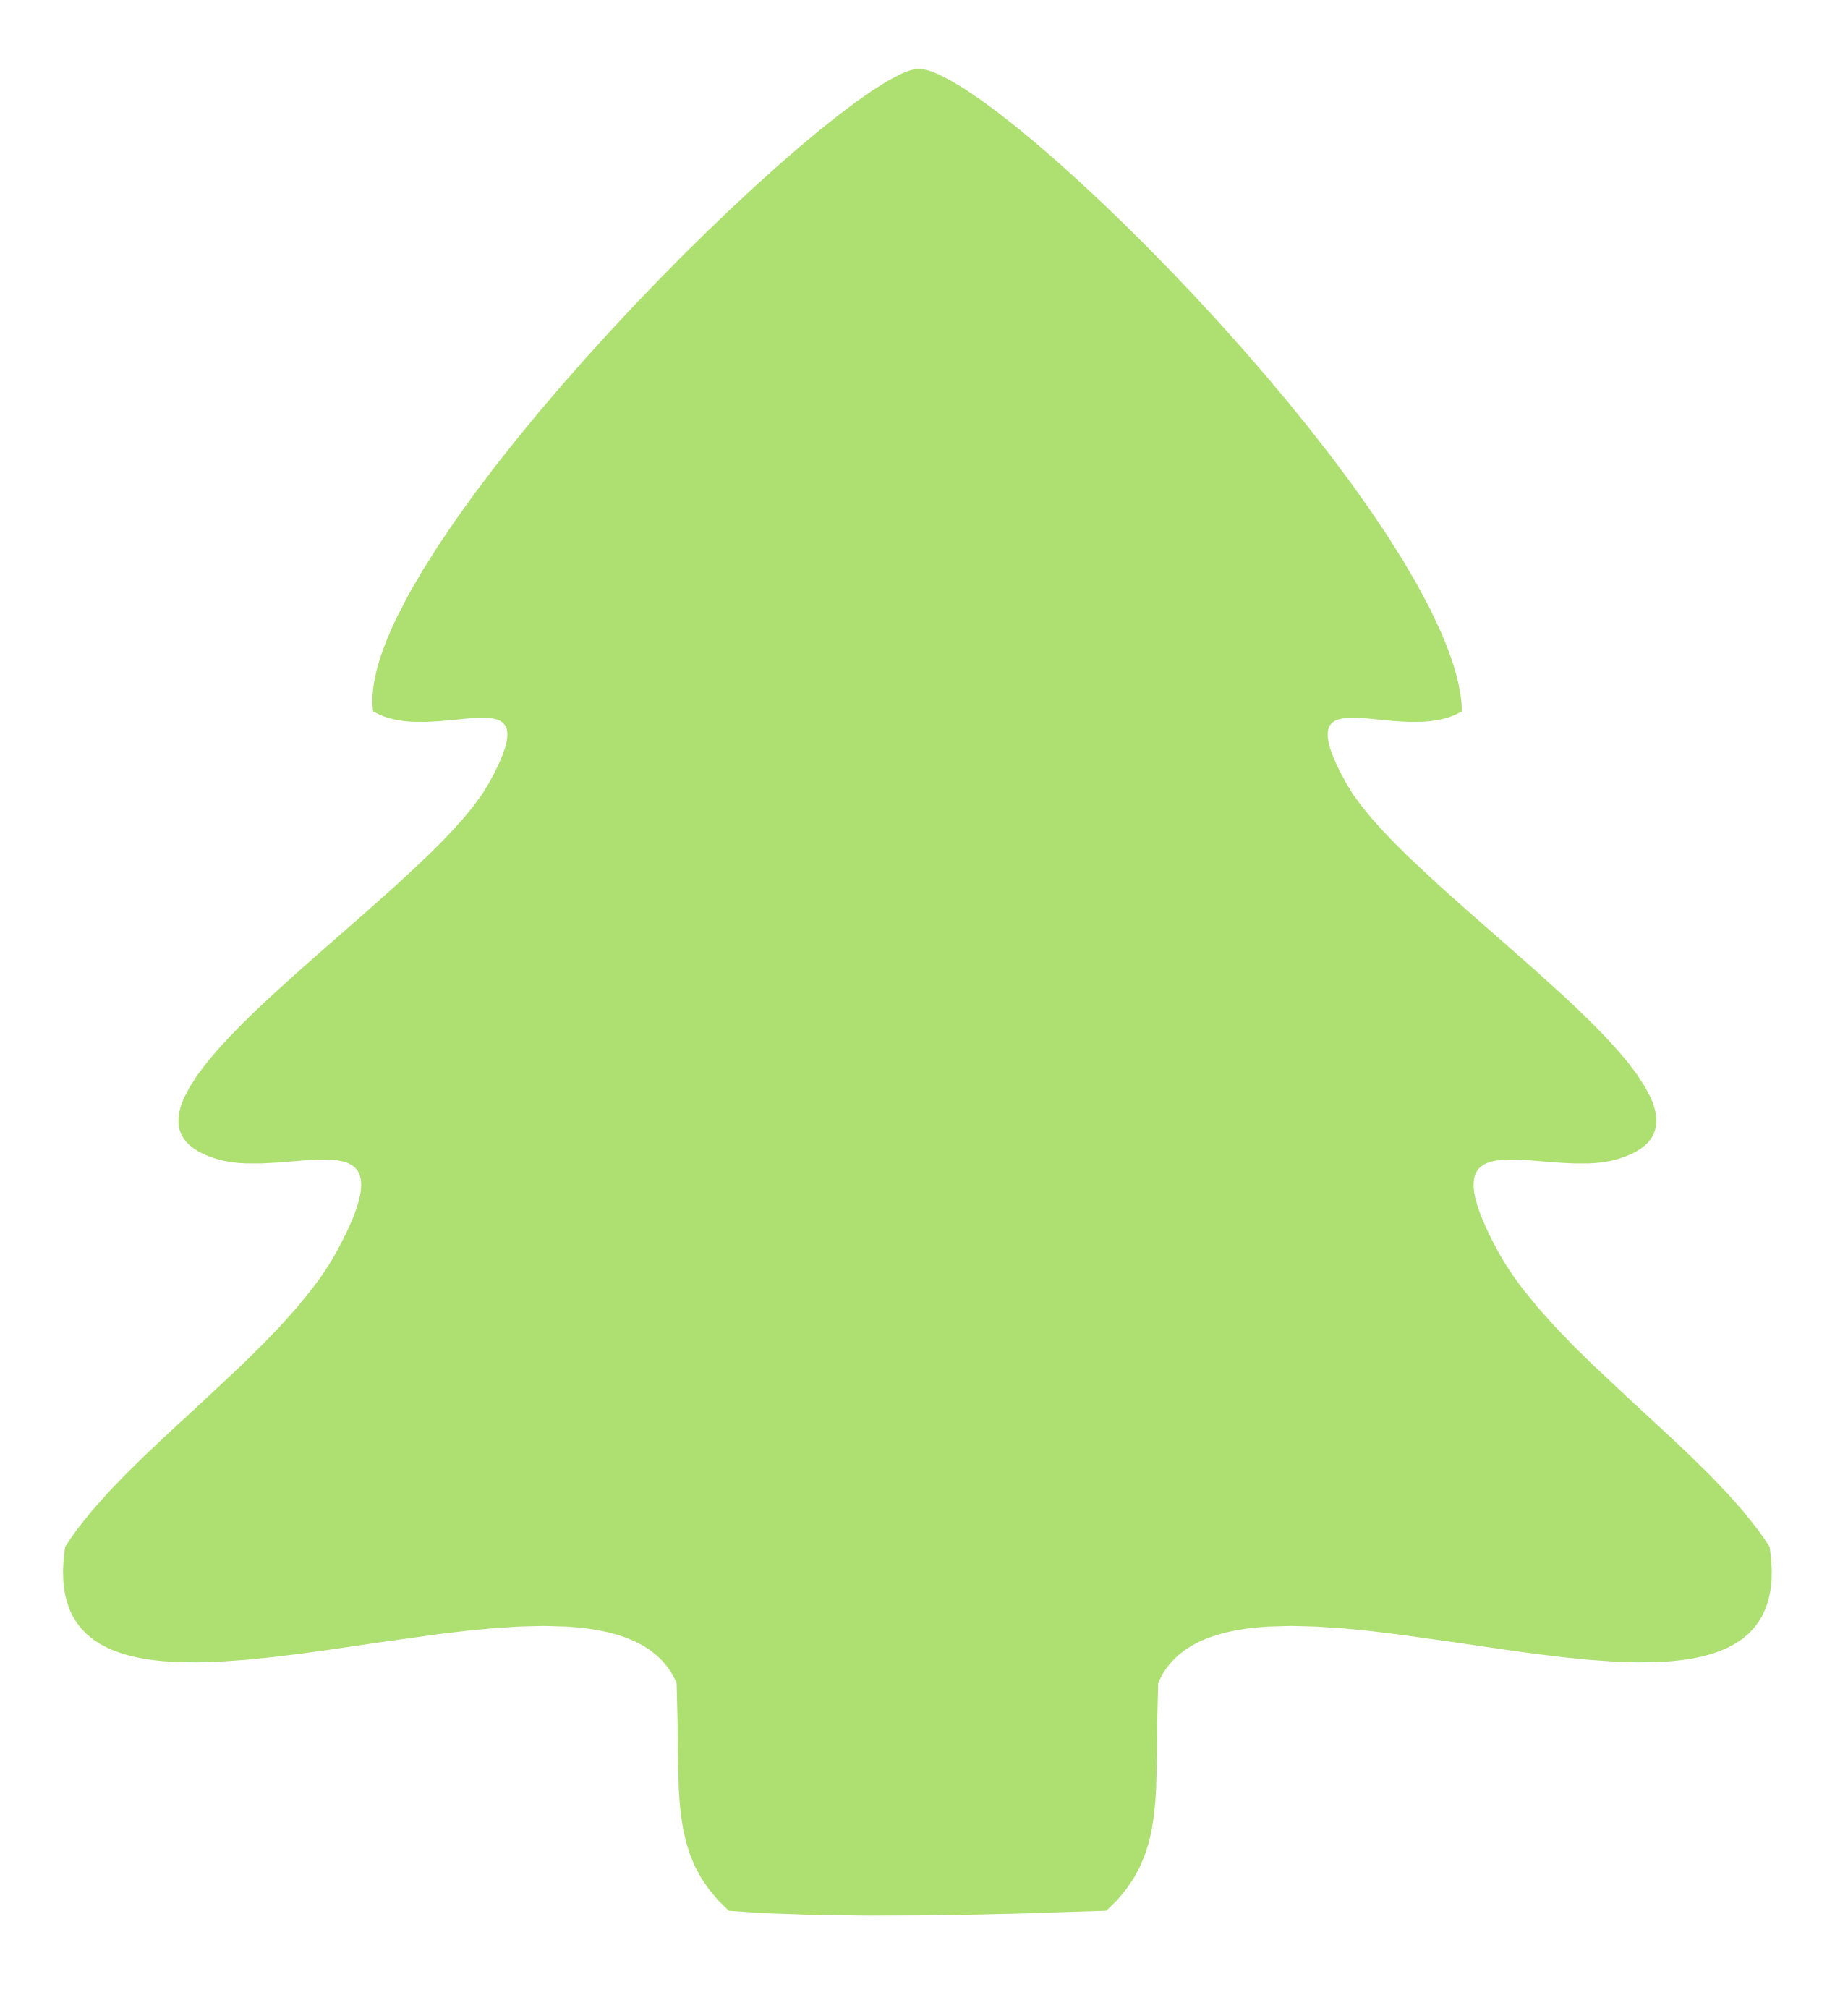 Christmas Tree Clip Art Christmas Tree Icon Xmas Flower Flora 2555px